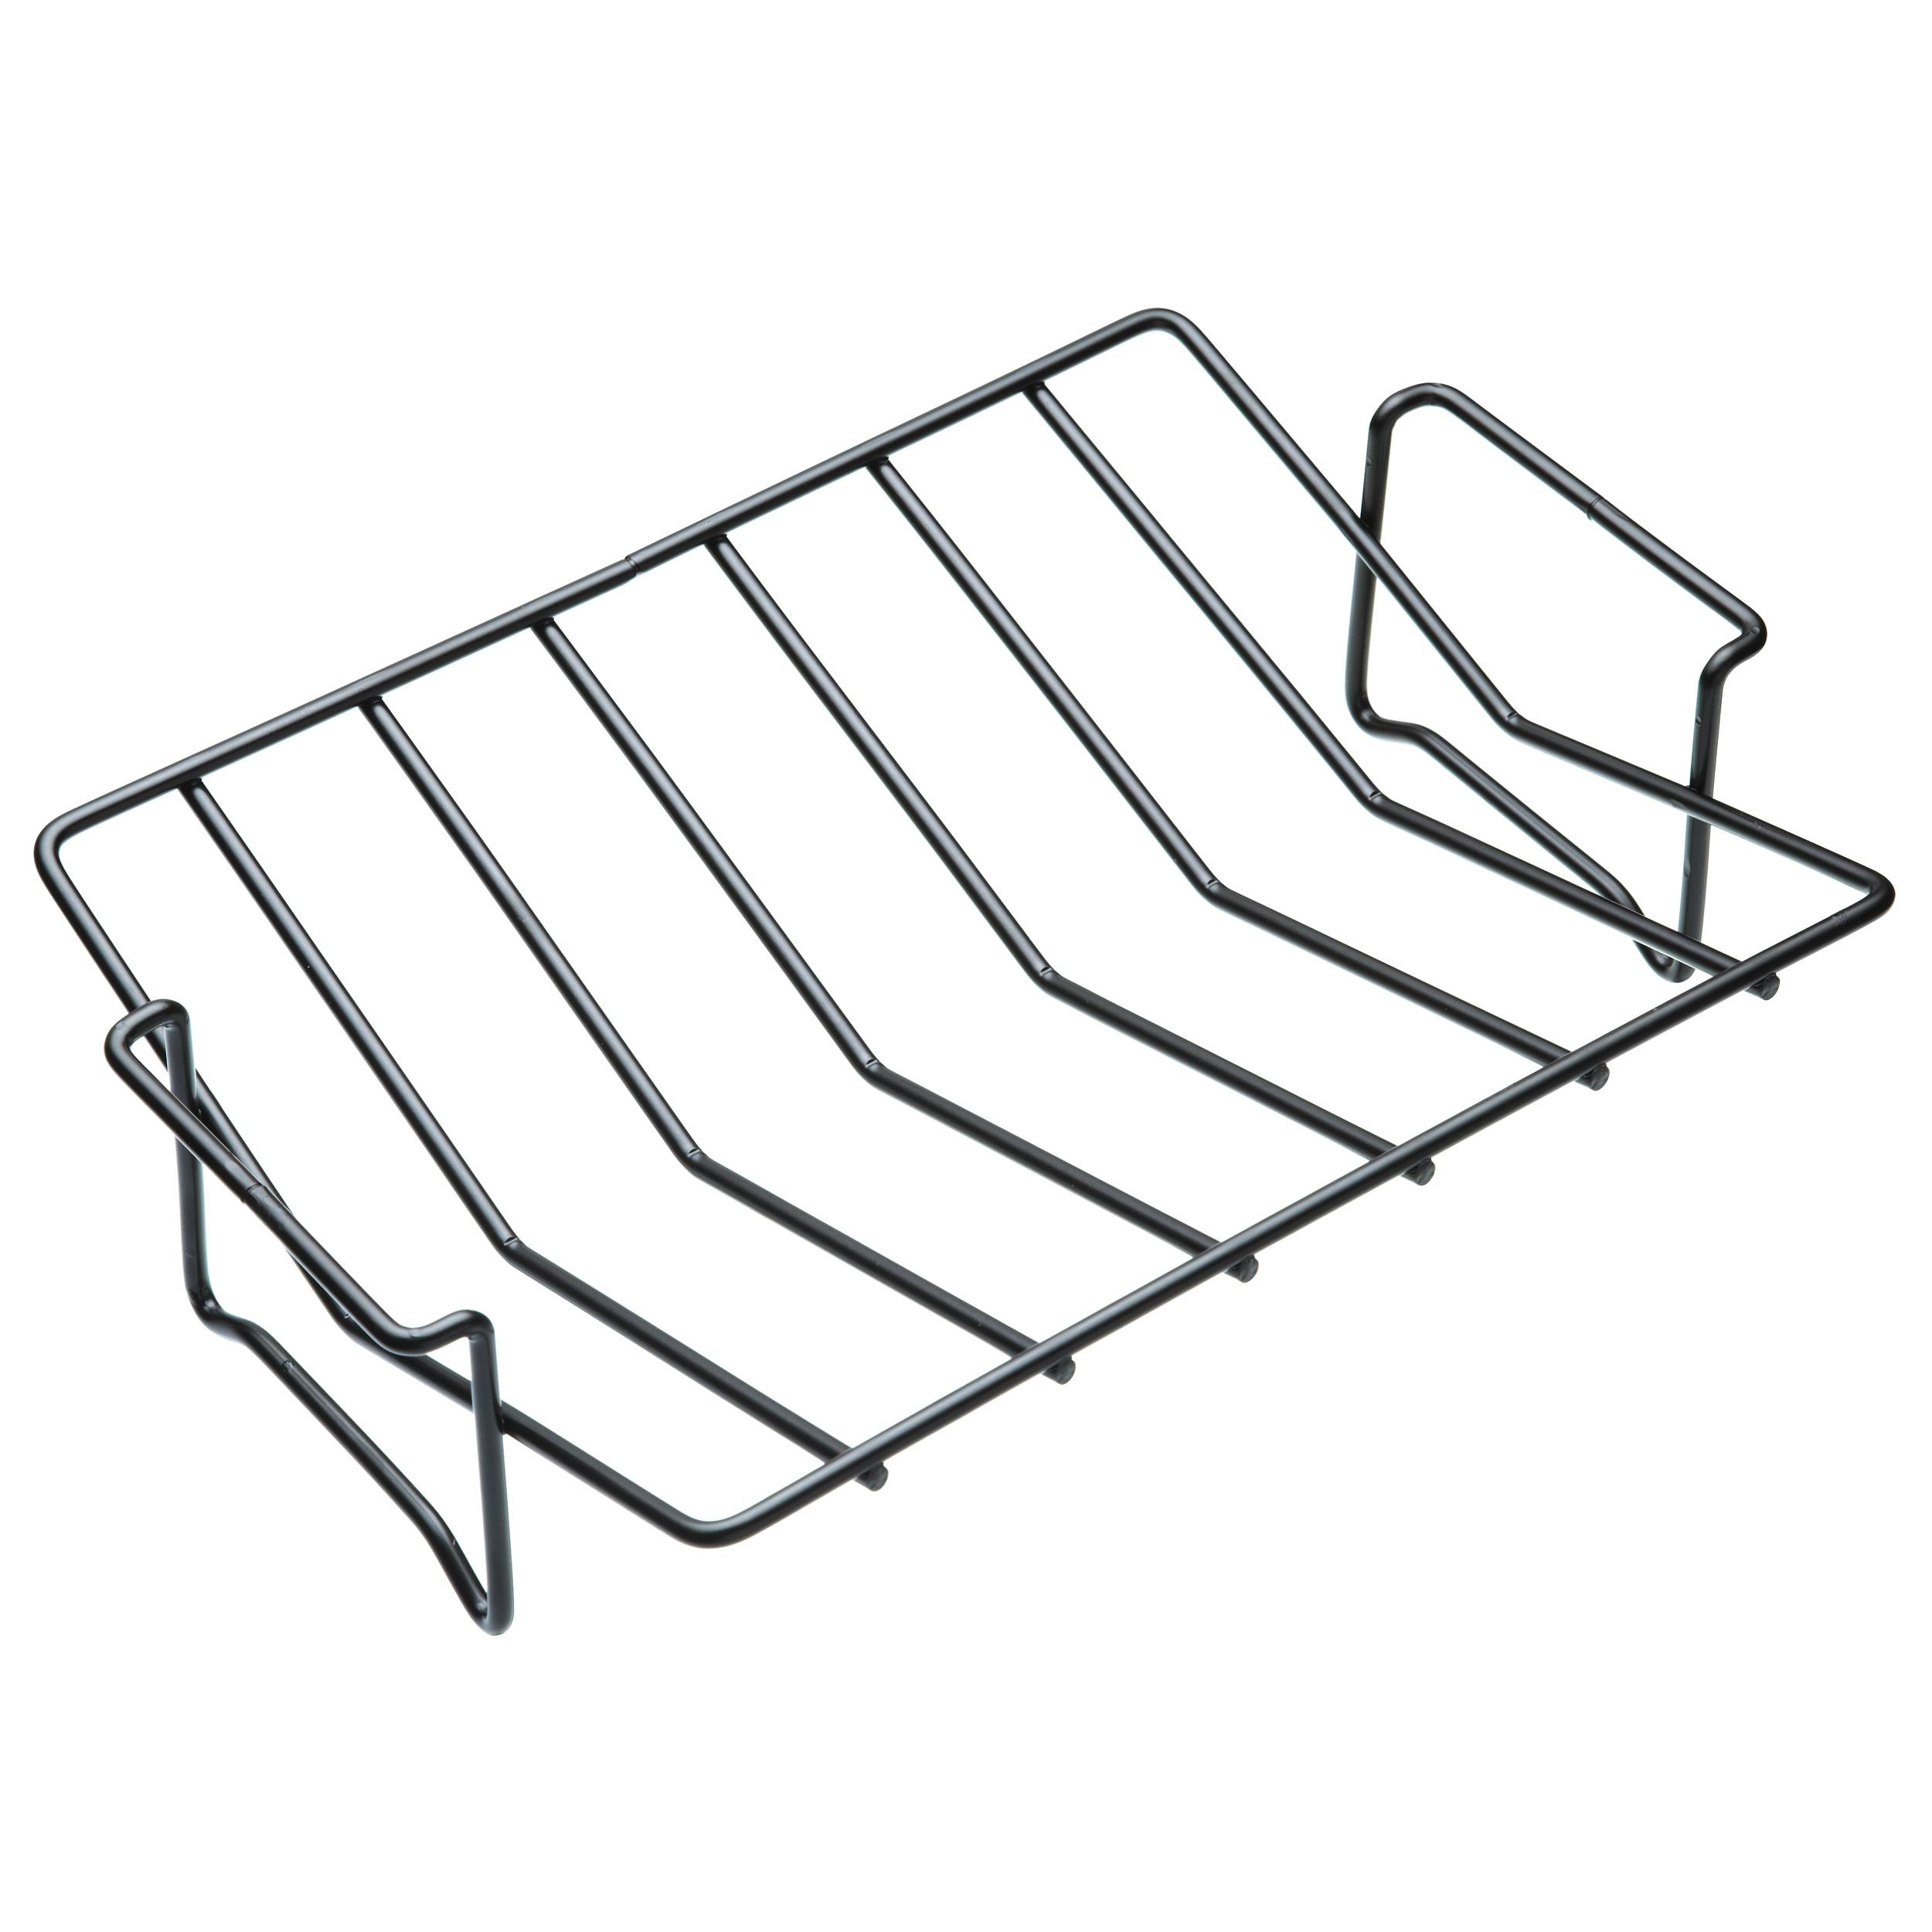 ware roasting rack dp com amazon pans dining kitchen up nordic fold